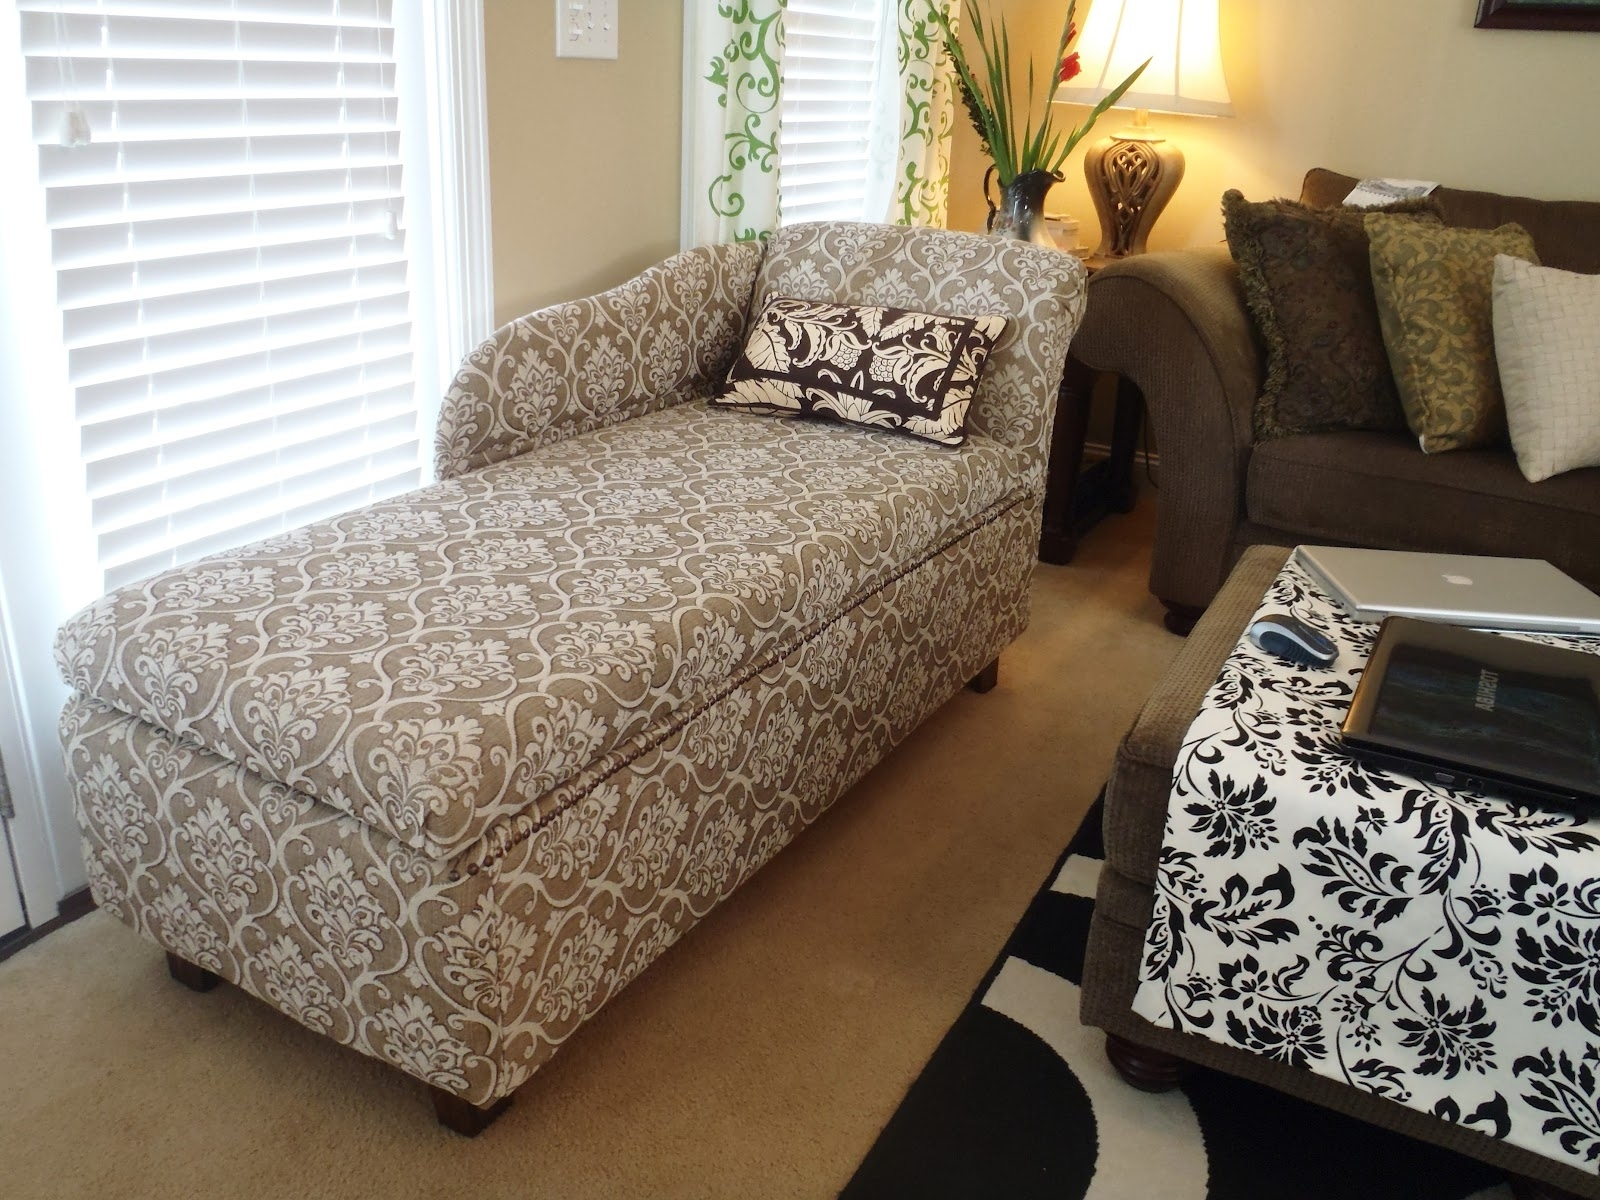 Lazy Liz On Less: Storage Chaise Lounge Within Most Popular Diy Chaise Lounge Chairs (View 8 of 15)